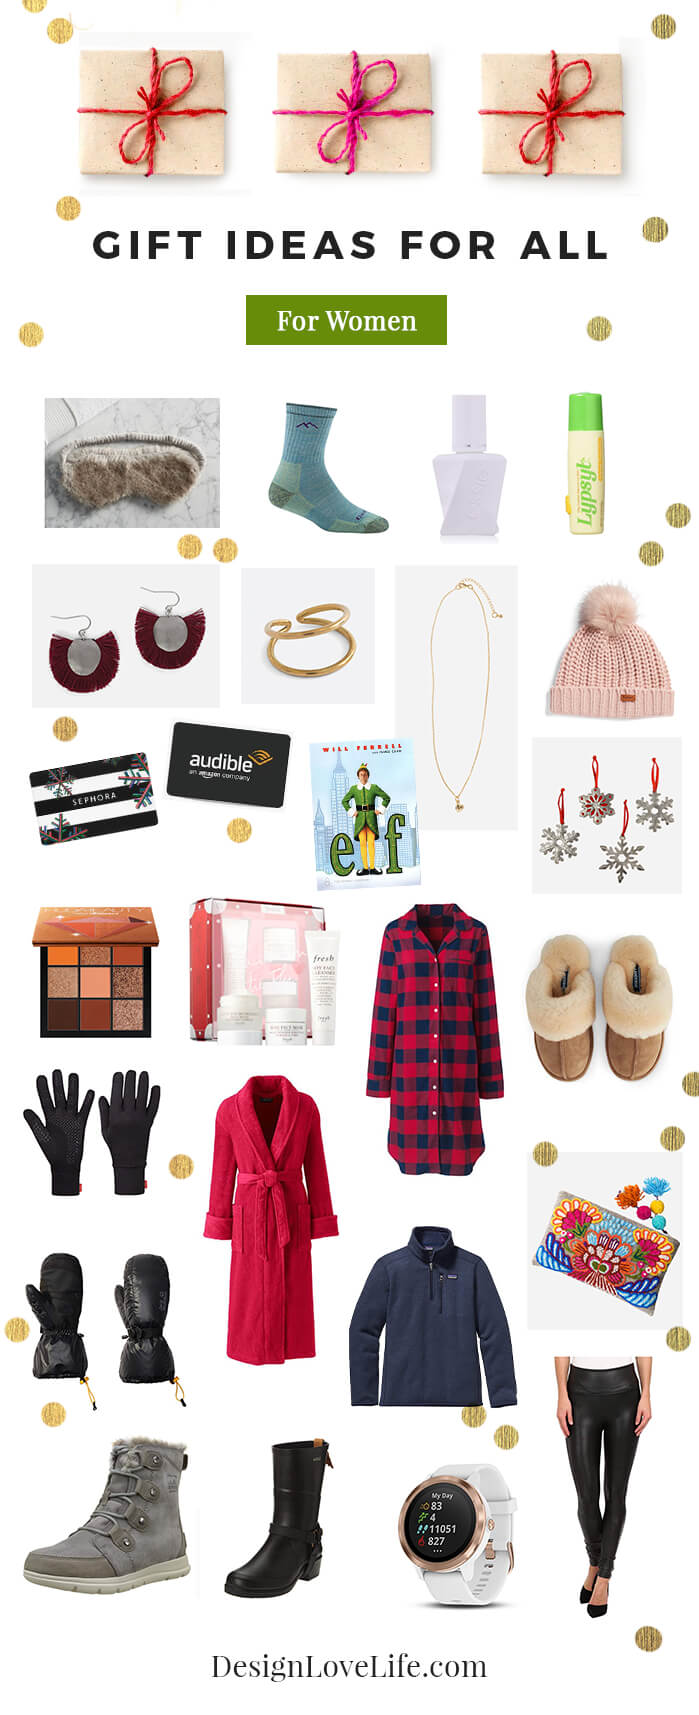 Gift Ideas For Women - Design Love Life Blog